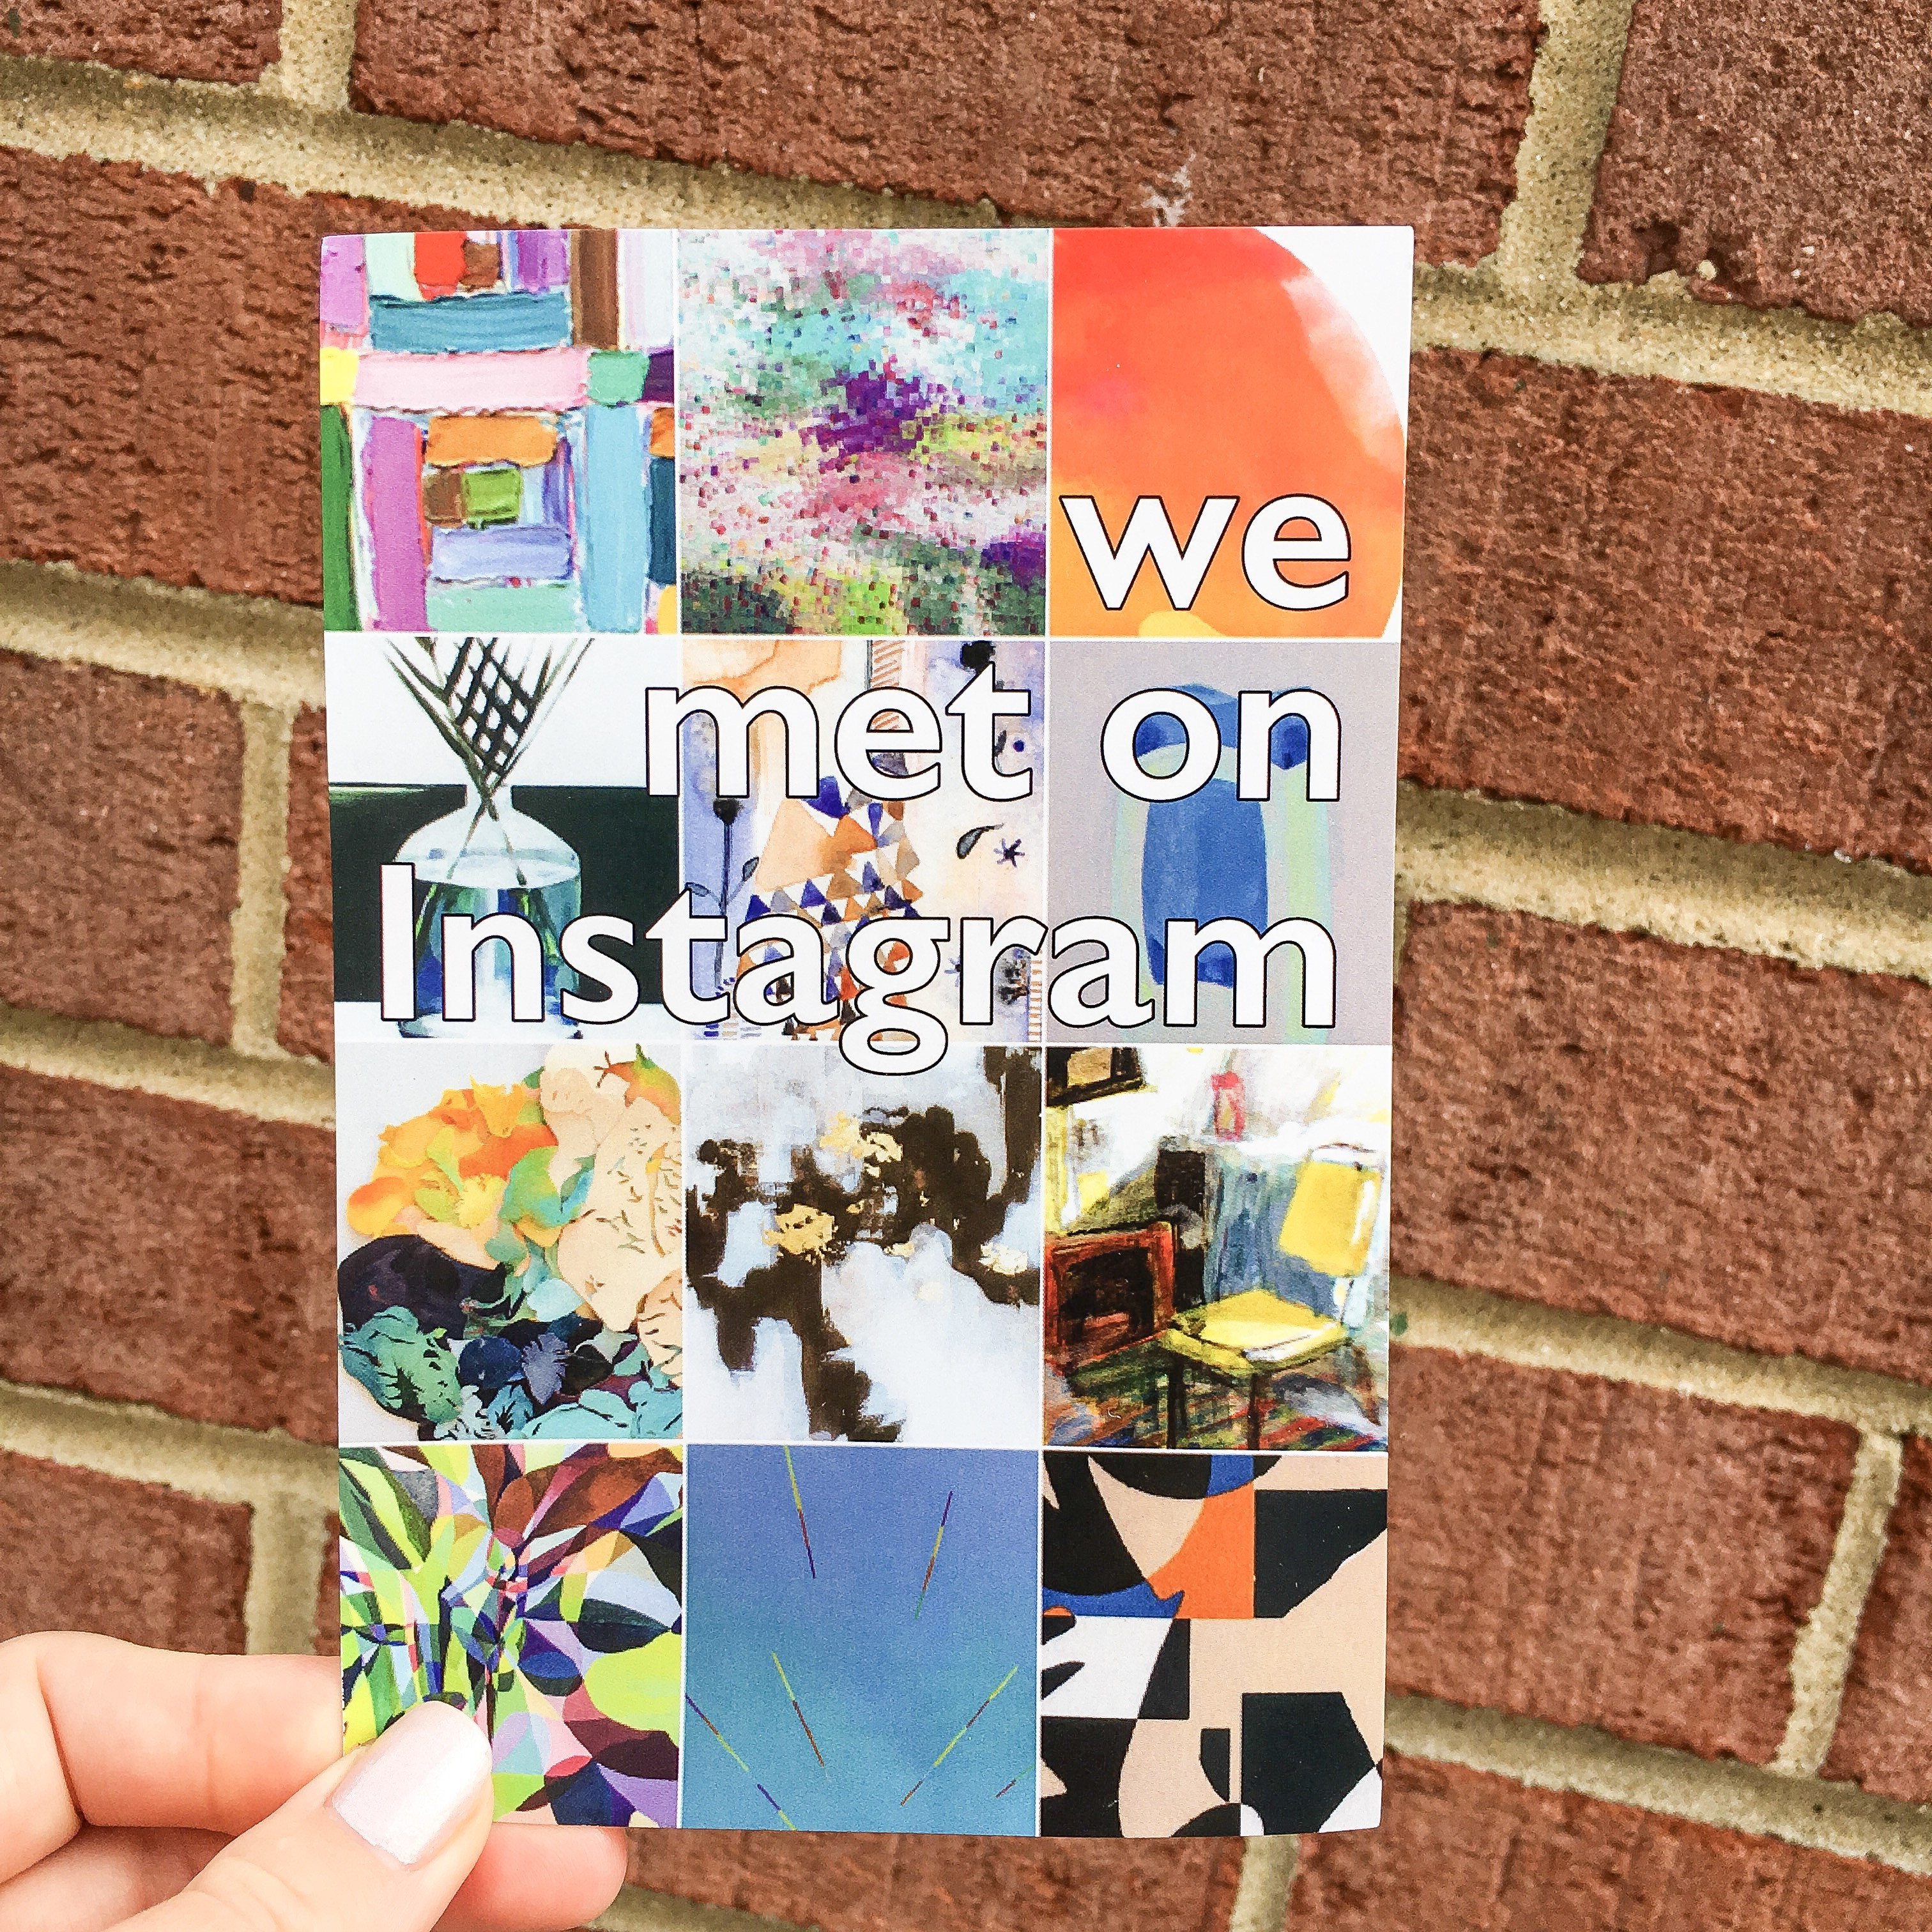 Willow Street Gallery Presents: We Met on Instagram (and Don't Worry, You Can Too!)